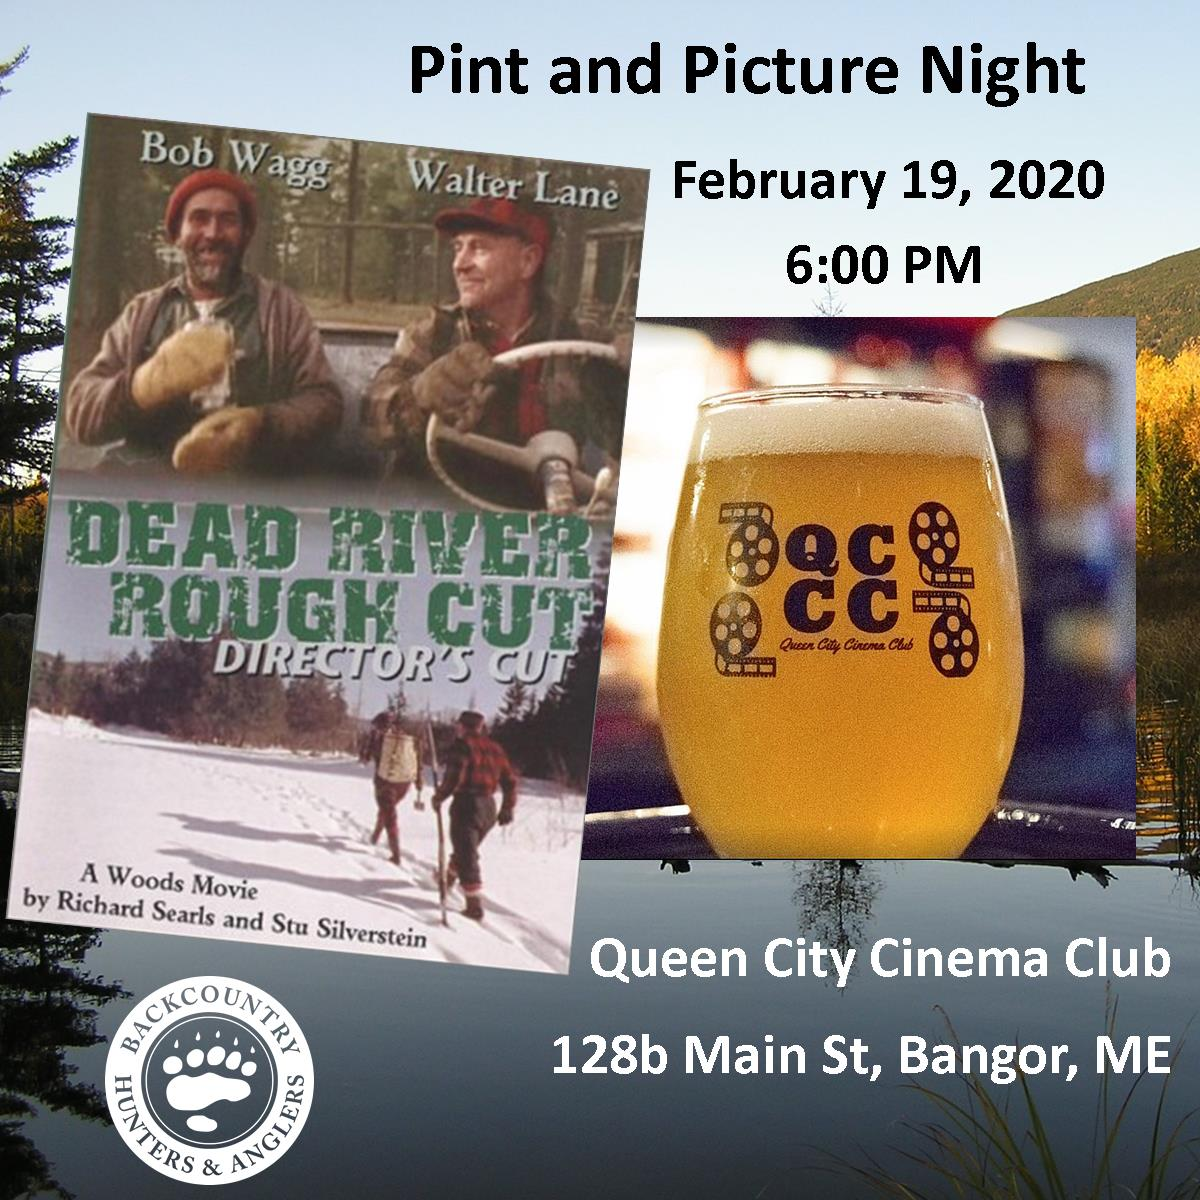 Bangor_Pint_and_Picture_Night-_Instagram-Rough_Cut.jpg